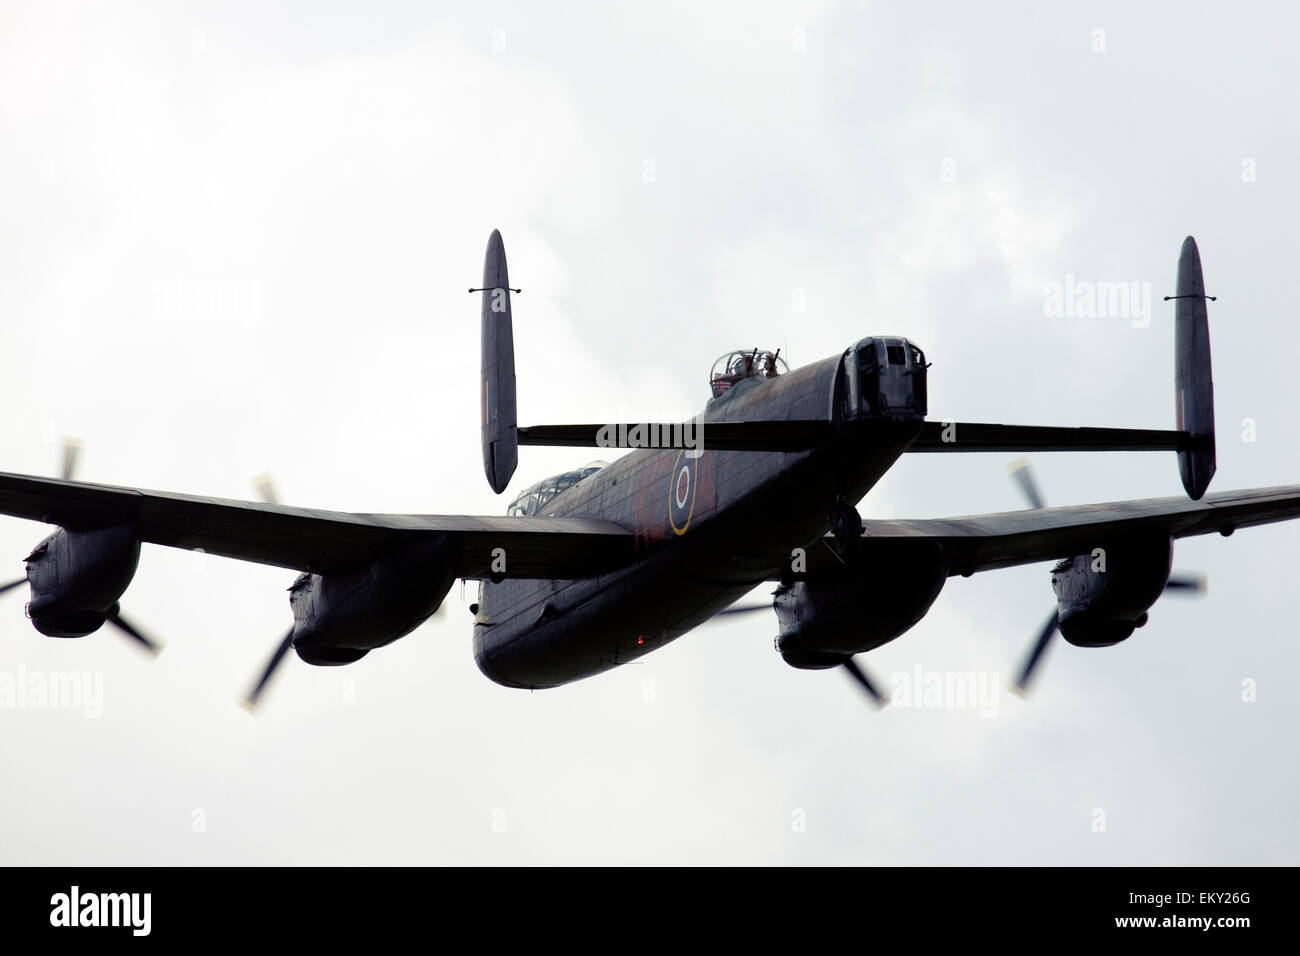 Avro 683 Lancaster B1 UK Royal Air Force at  Farnborough International Airshow 2014 Stock Photo